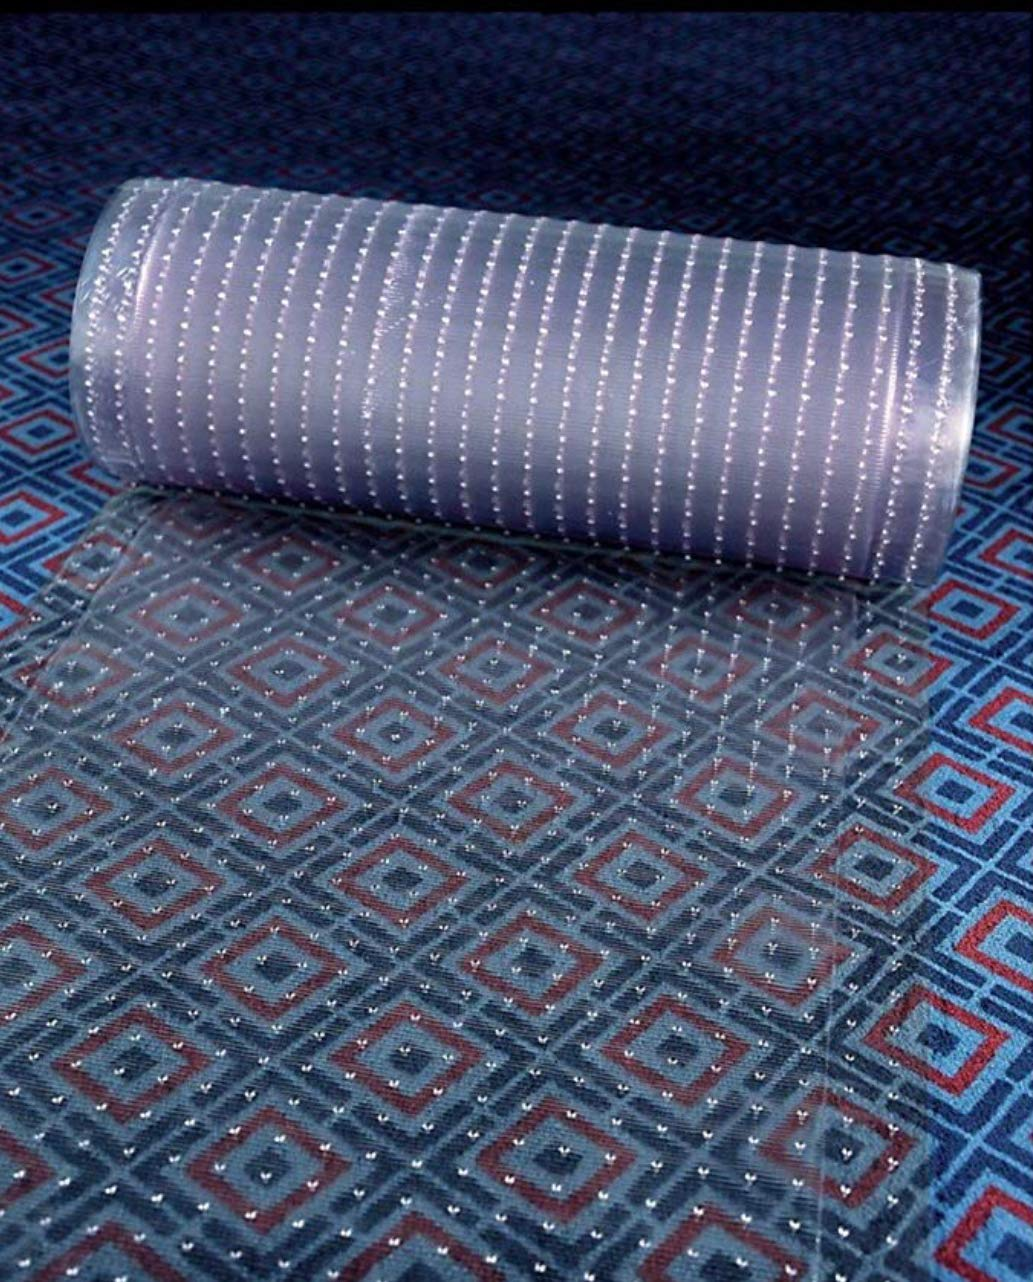 Clear Plastic Runner Rug and Carpet Protector mat Multi-Grip (26in x 15FT)